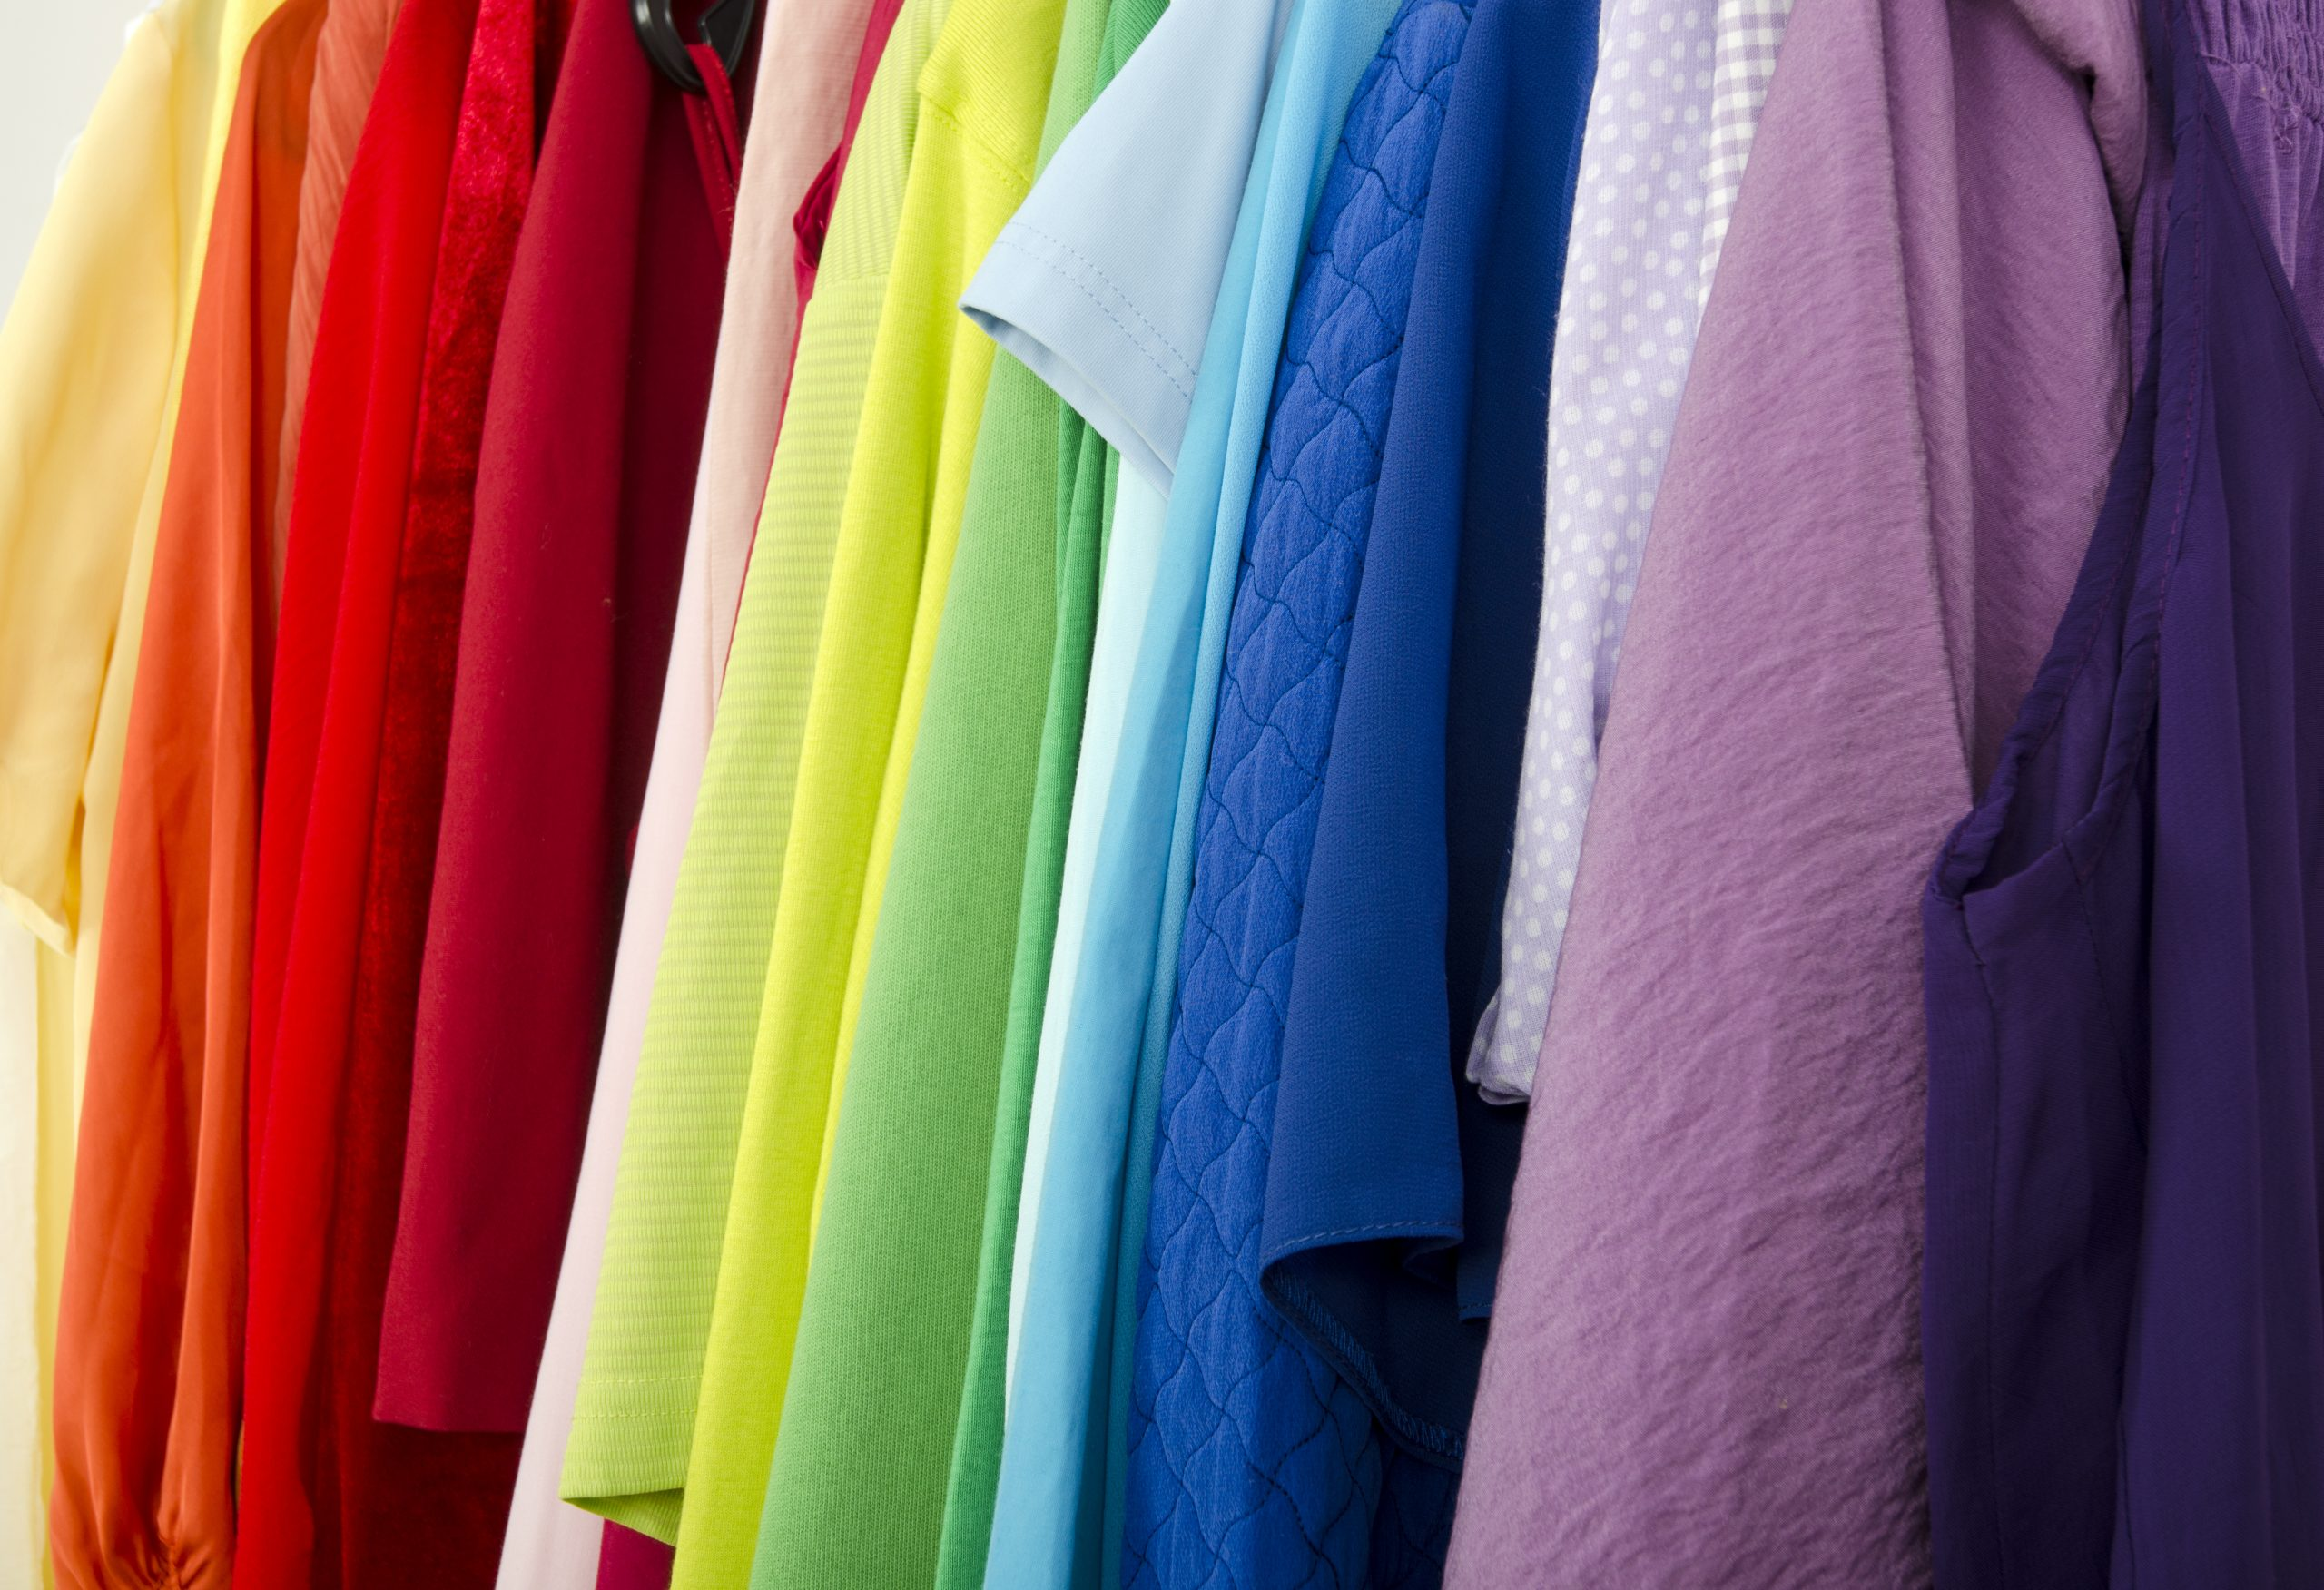 Should You Organize Your Closet By Color Closetworld,How Big Is A King Size Bed